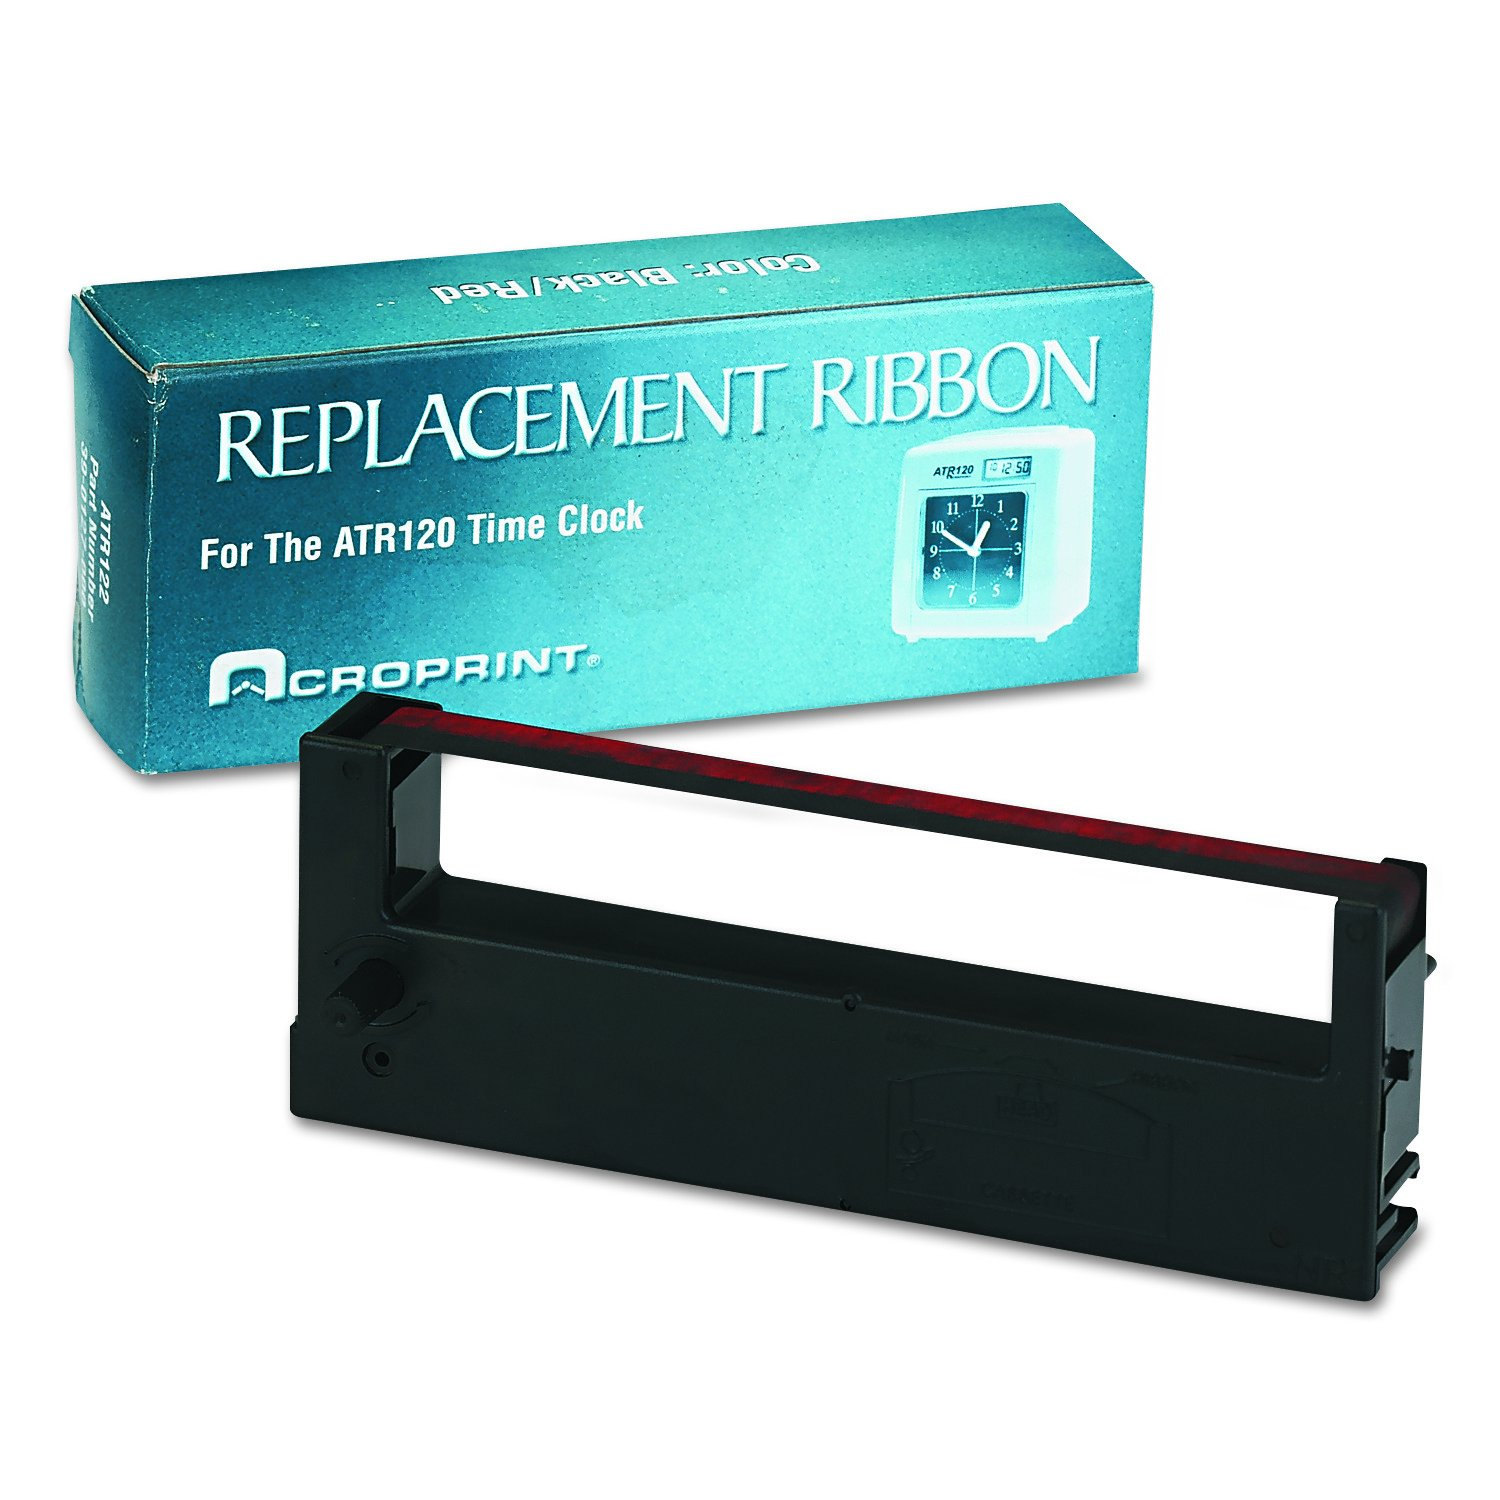 Acroprint Time Recorder Co. Acroprint 39-0127-000 Replacement Ribbon for ATR120 Time Recorder, Black/Red Time Clock